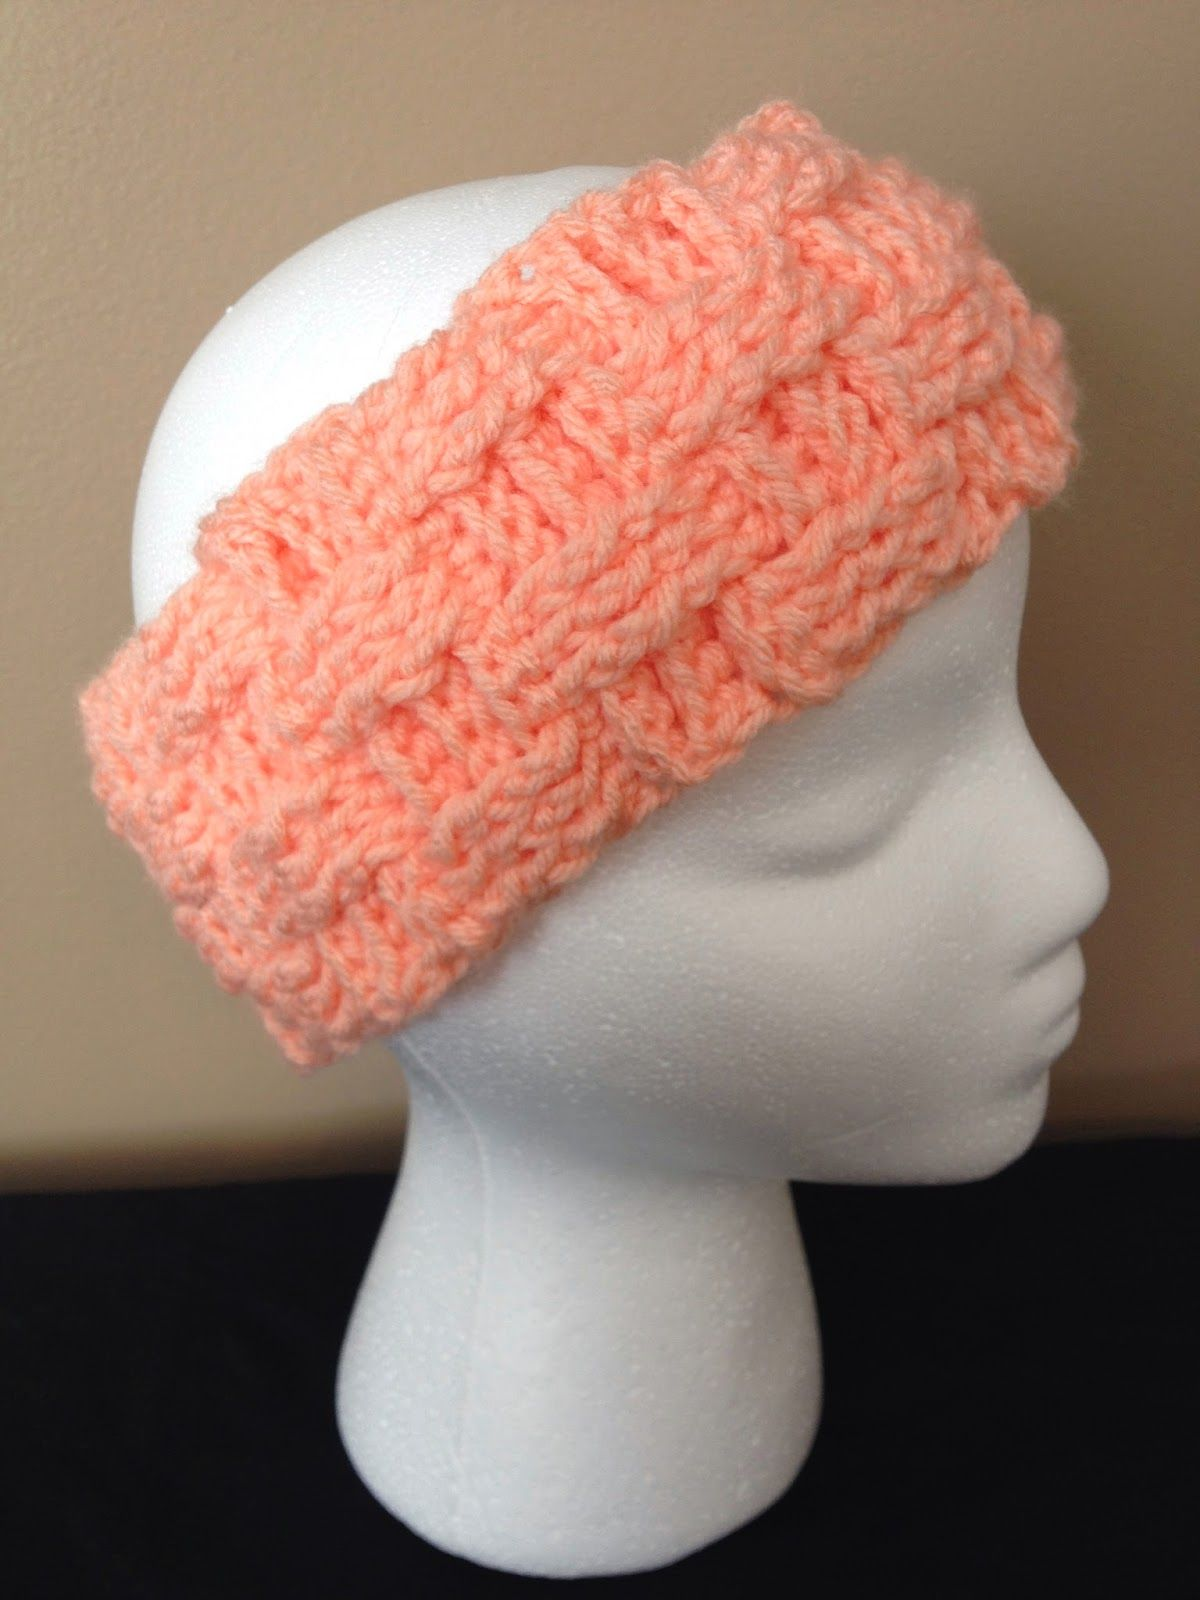 My Crocheted World: Basket Weave Ear Warmer Free Pattern ...